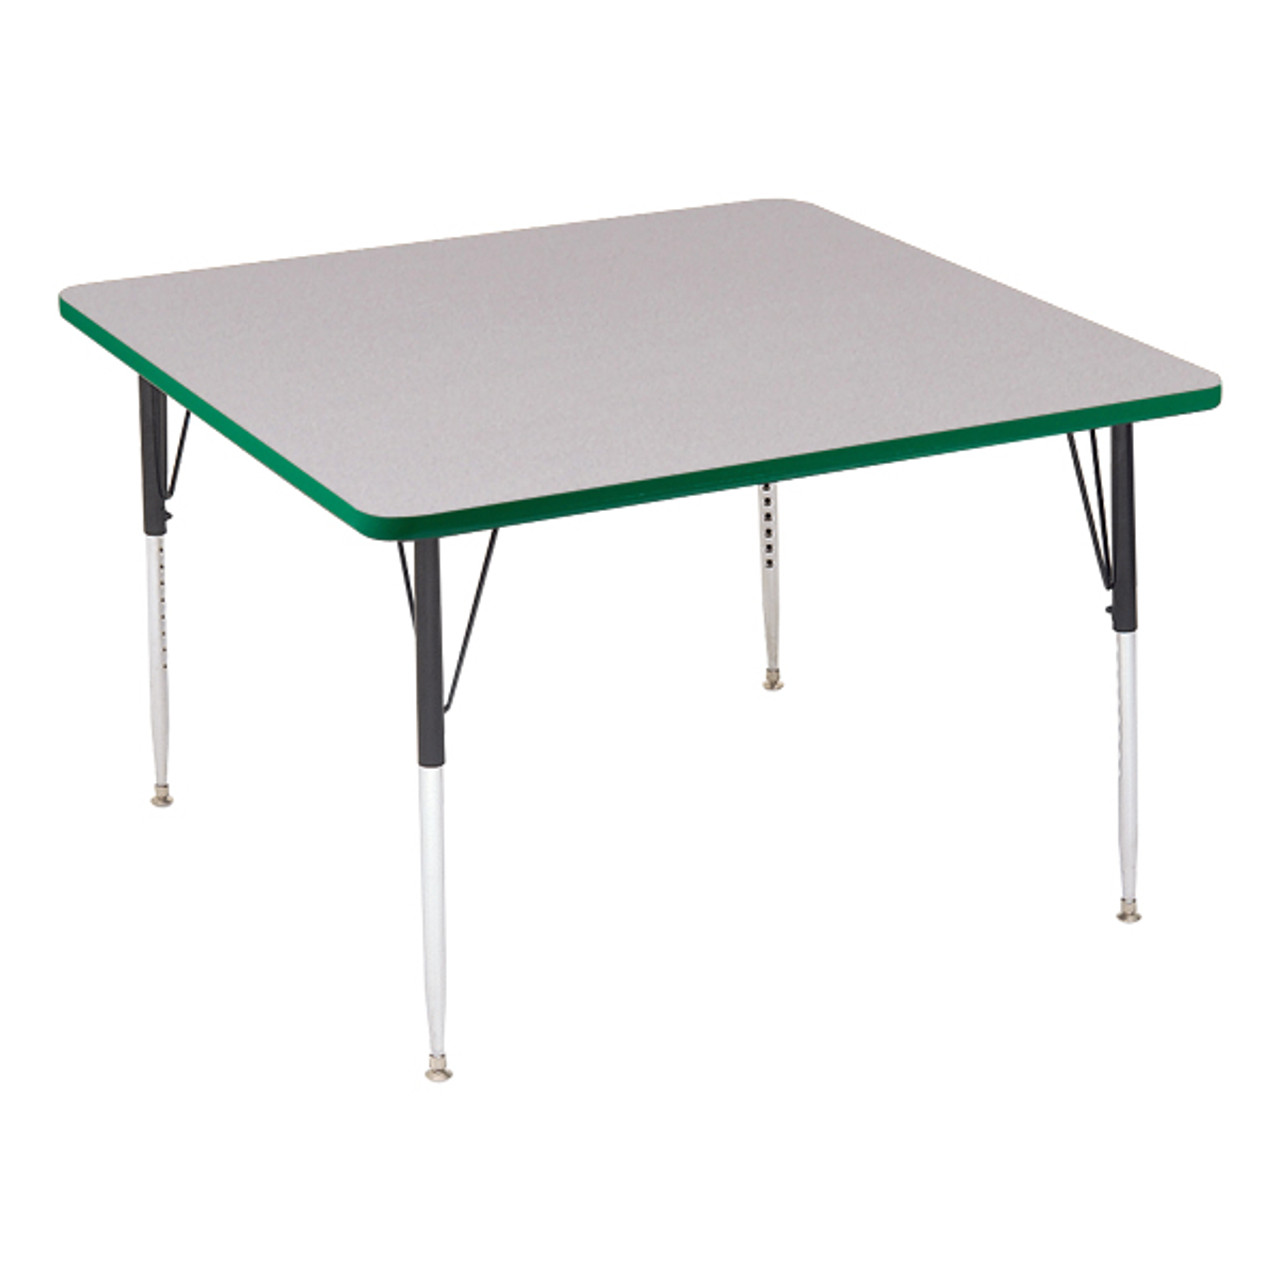 Superieur ... A4242 SQ High Pressure Square Shape Activity Table 42 Inch Diameter  Adjustable Height ...